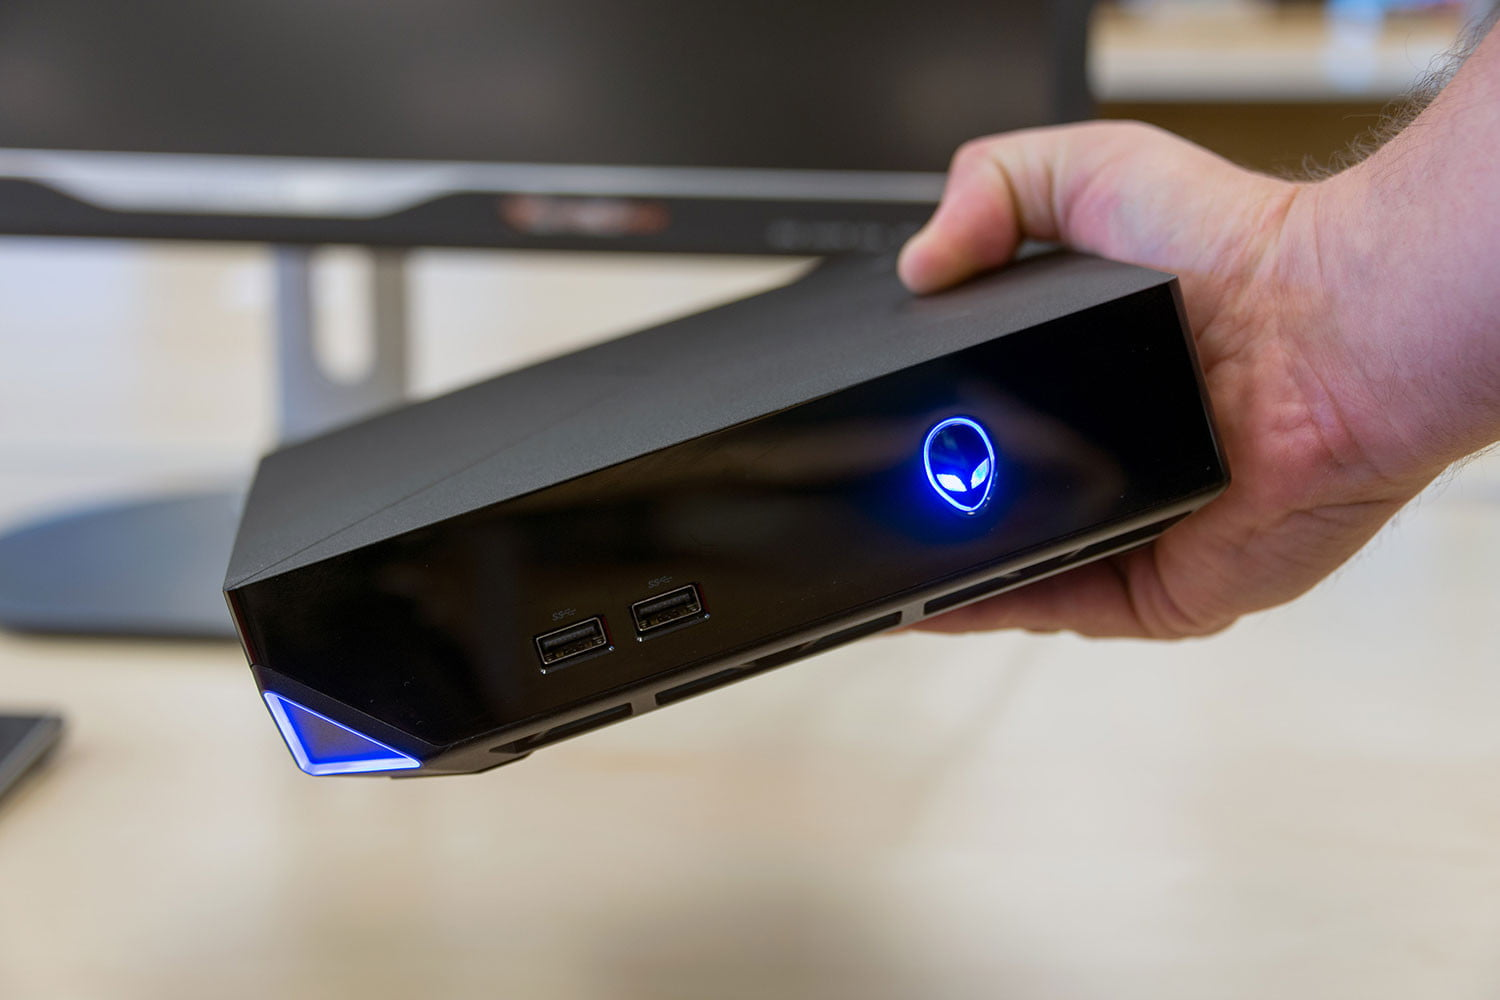 alienware alpha r2 review digital trends stereological pipette stereological